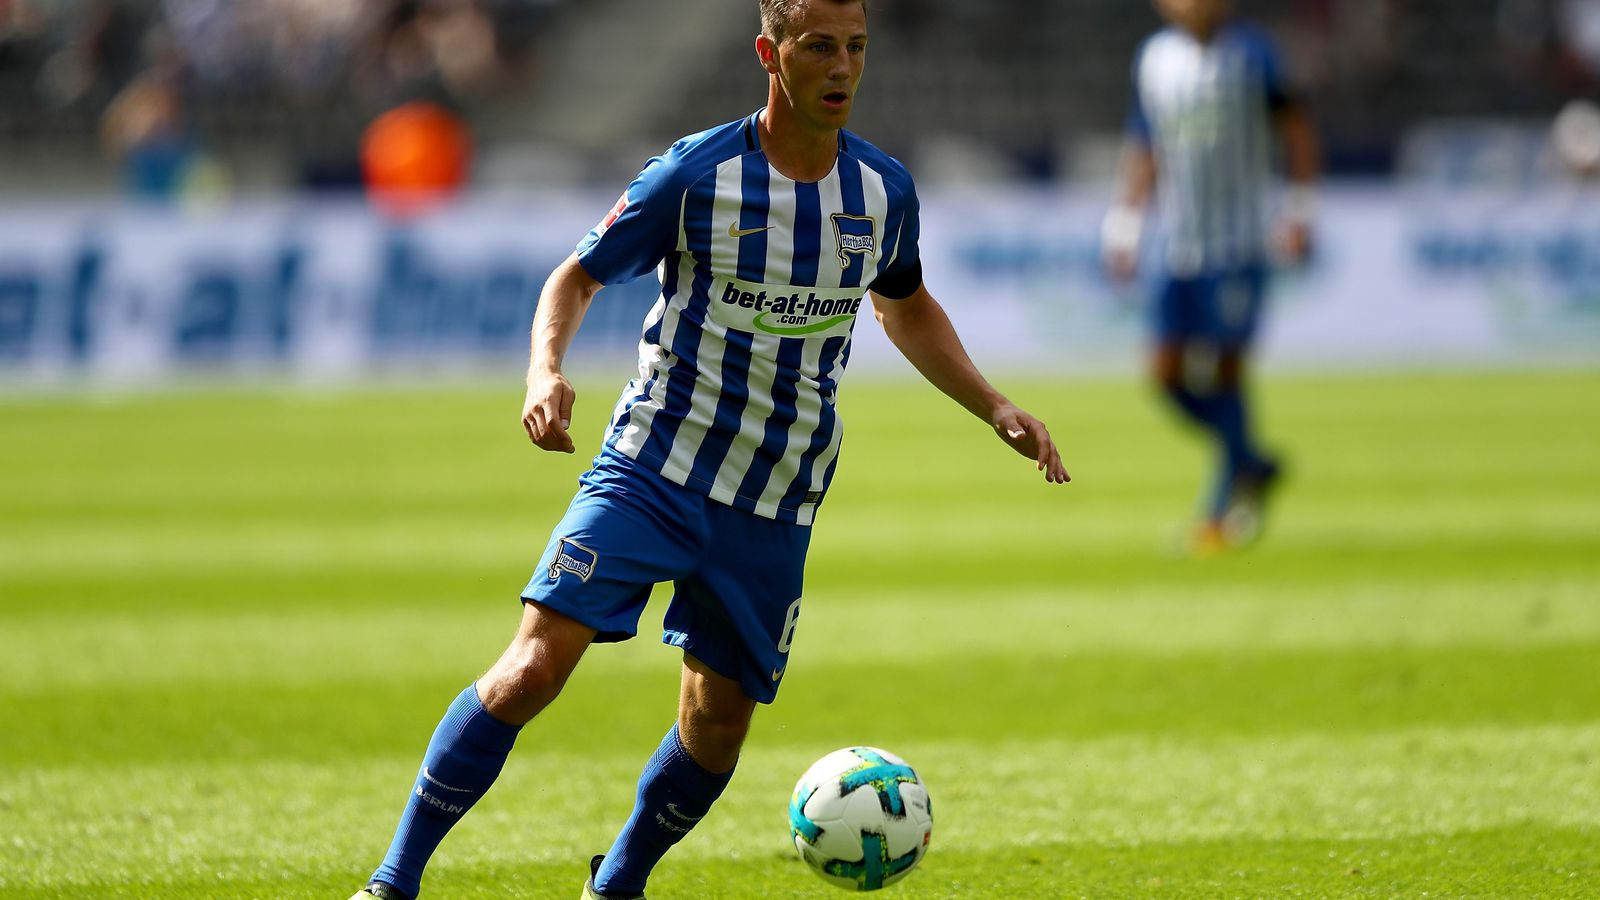 Hertha Bsc Vs Dortmund